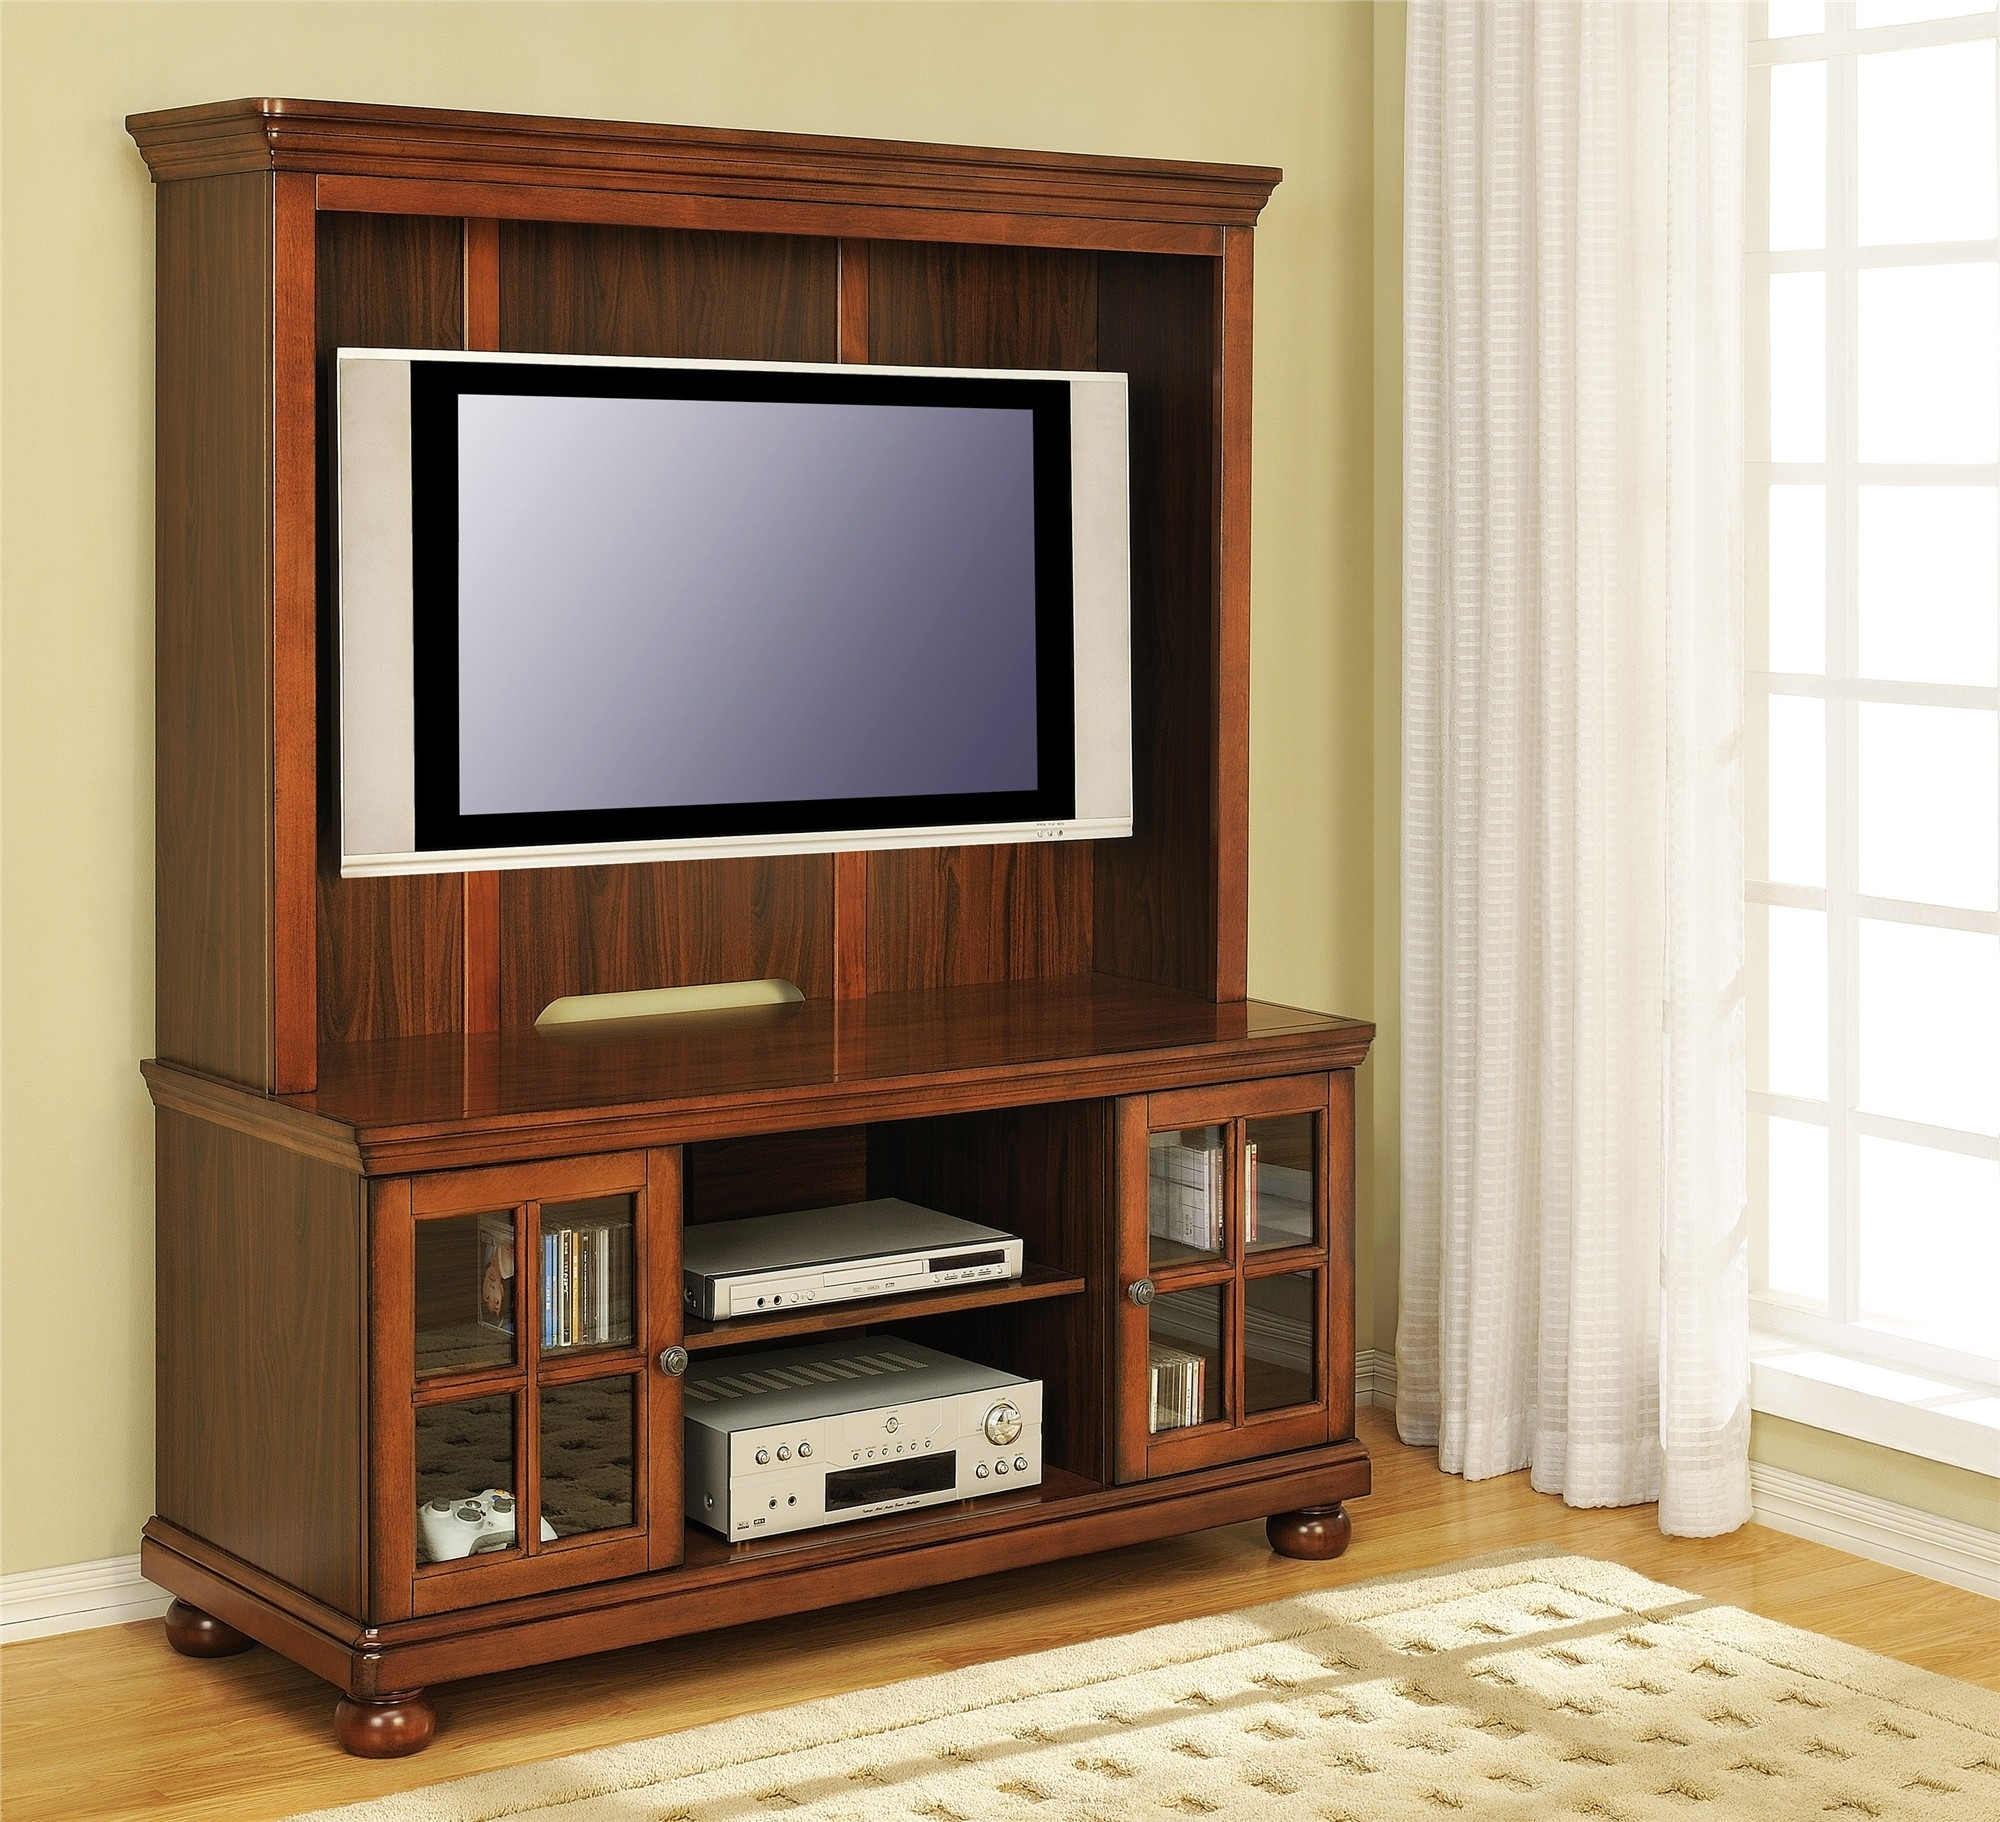 Flat Screen Tv Cabinet With Pocket Doors